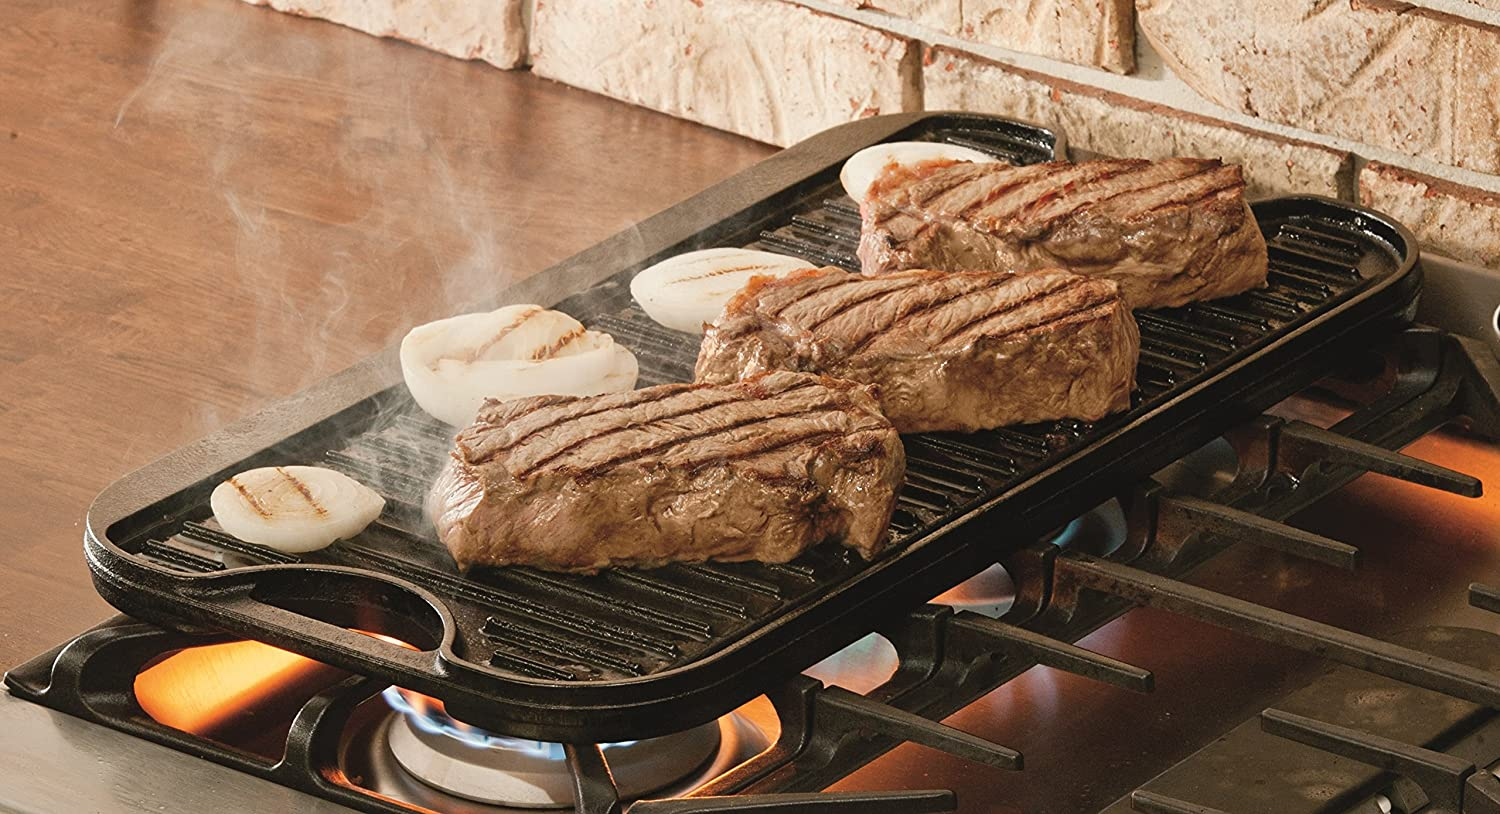 steaks and onions cooking on a reversible griddle atop stove burners